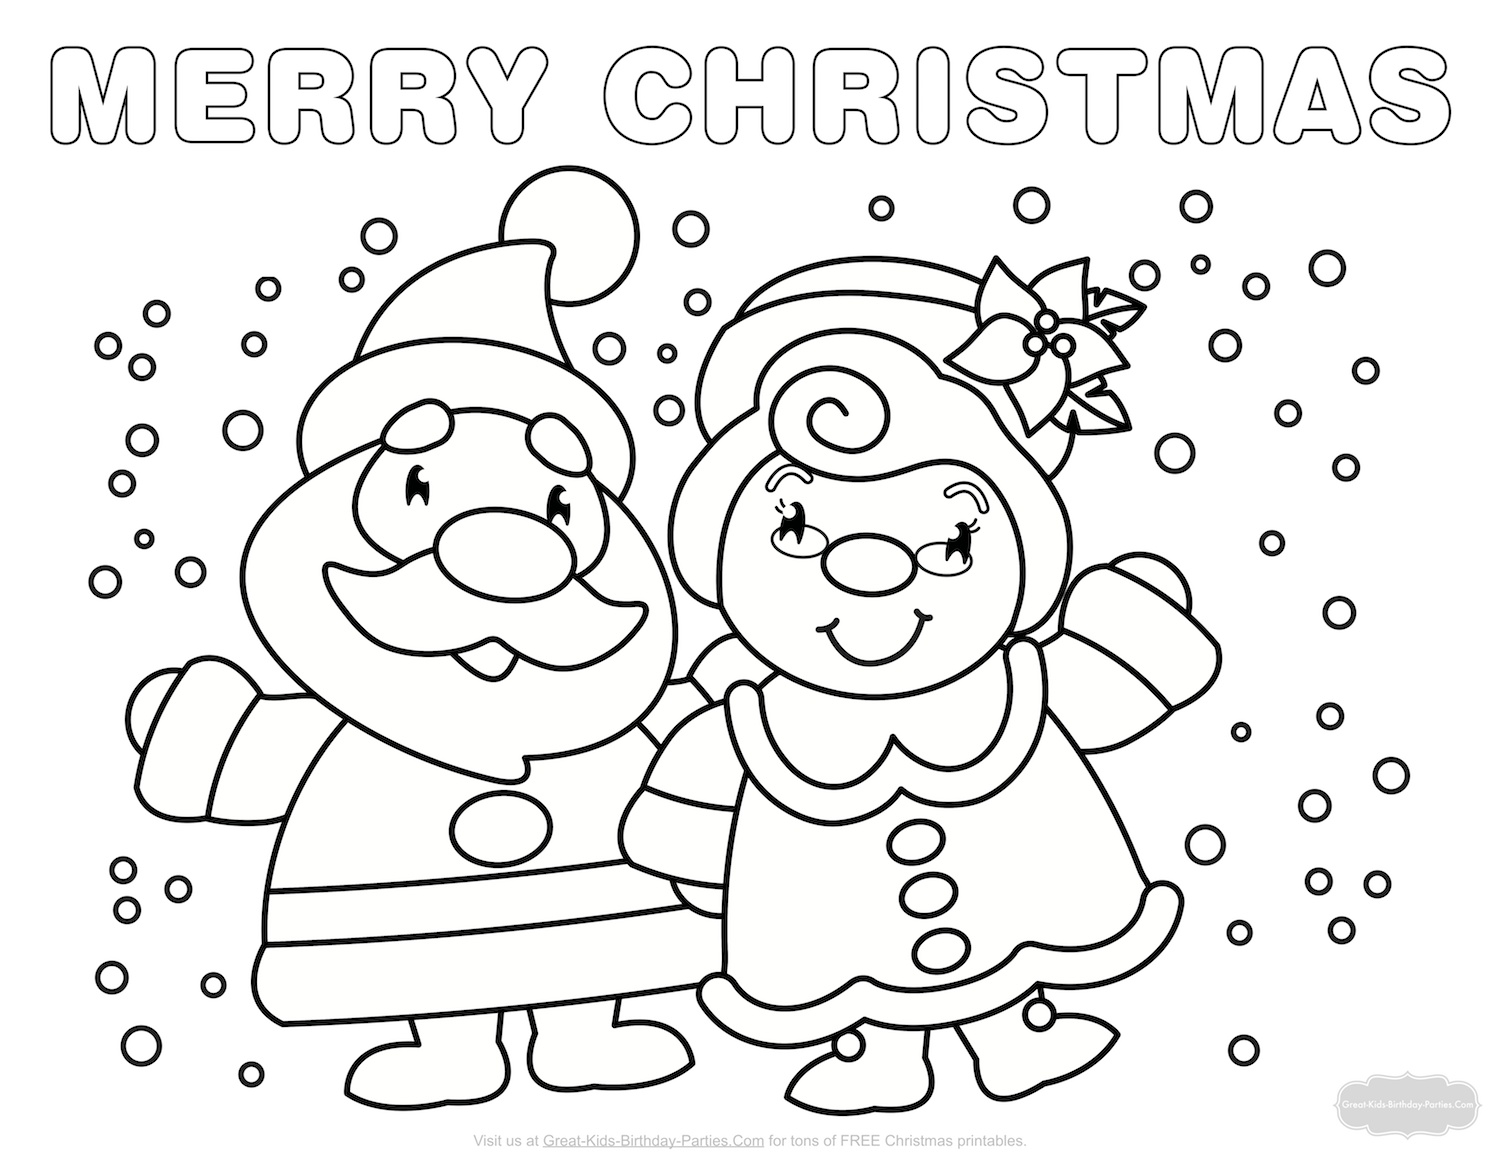 1500x1159 Old Cartoon Christmas Coloring Pages Gallery Coloring Sheets